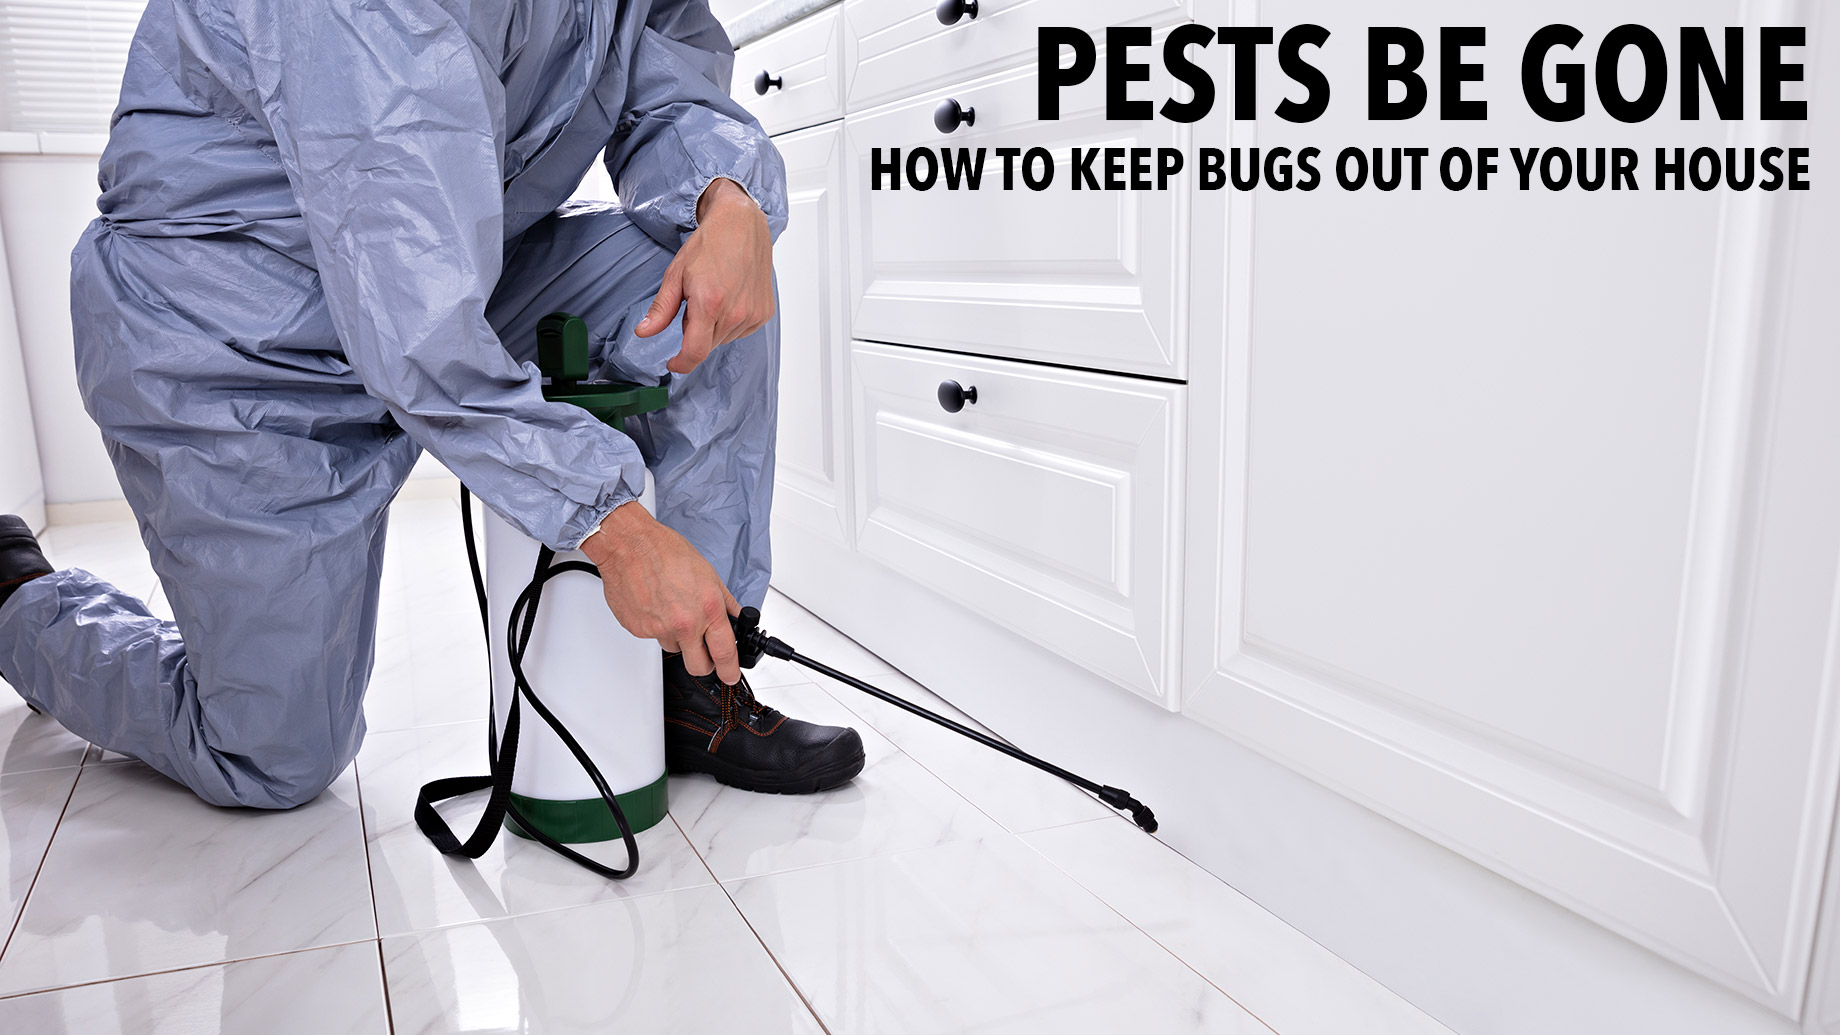 Pests Be Gone - How to Keep Bugs Out of Your House